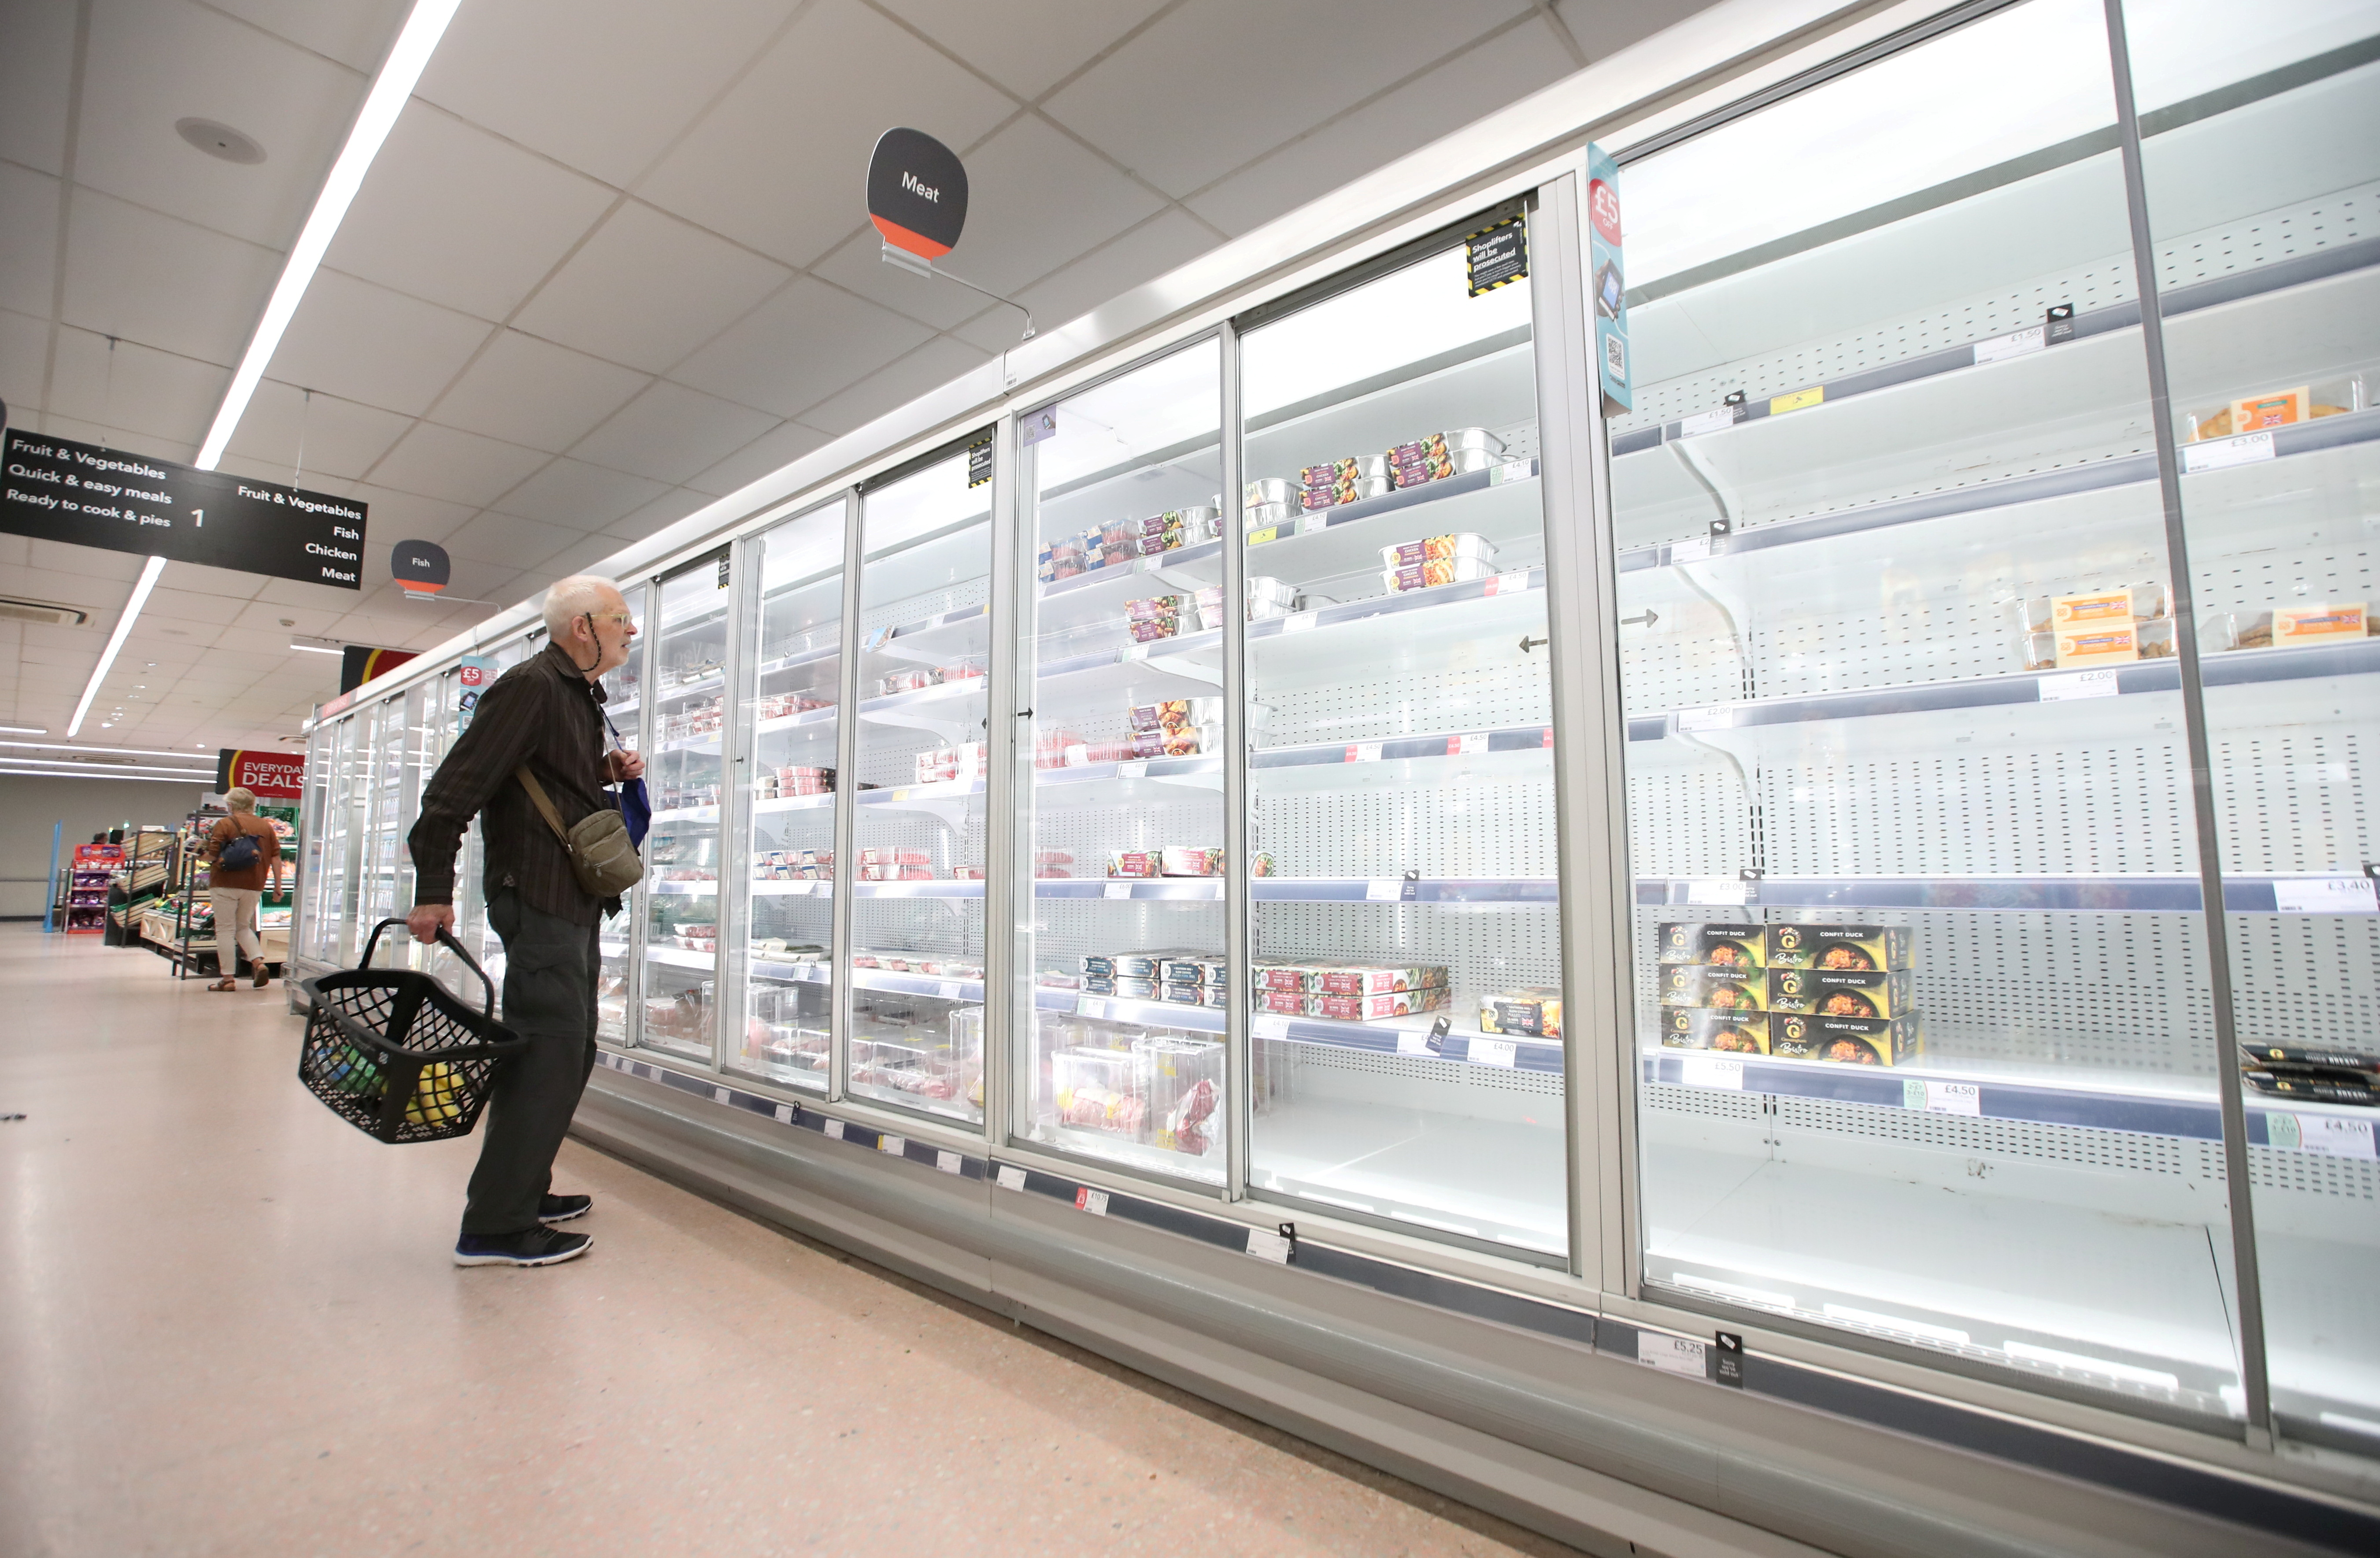 A shopper looks at produce and empty shelves of the meat aisle in Co-Op supermarket, Harpenden, Britain, September 22, 2021.  REUTERS/Peter Cziborra